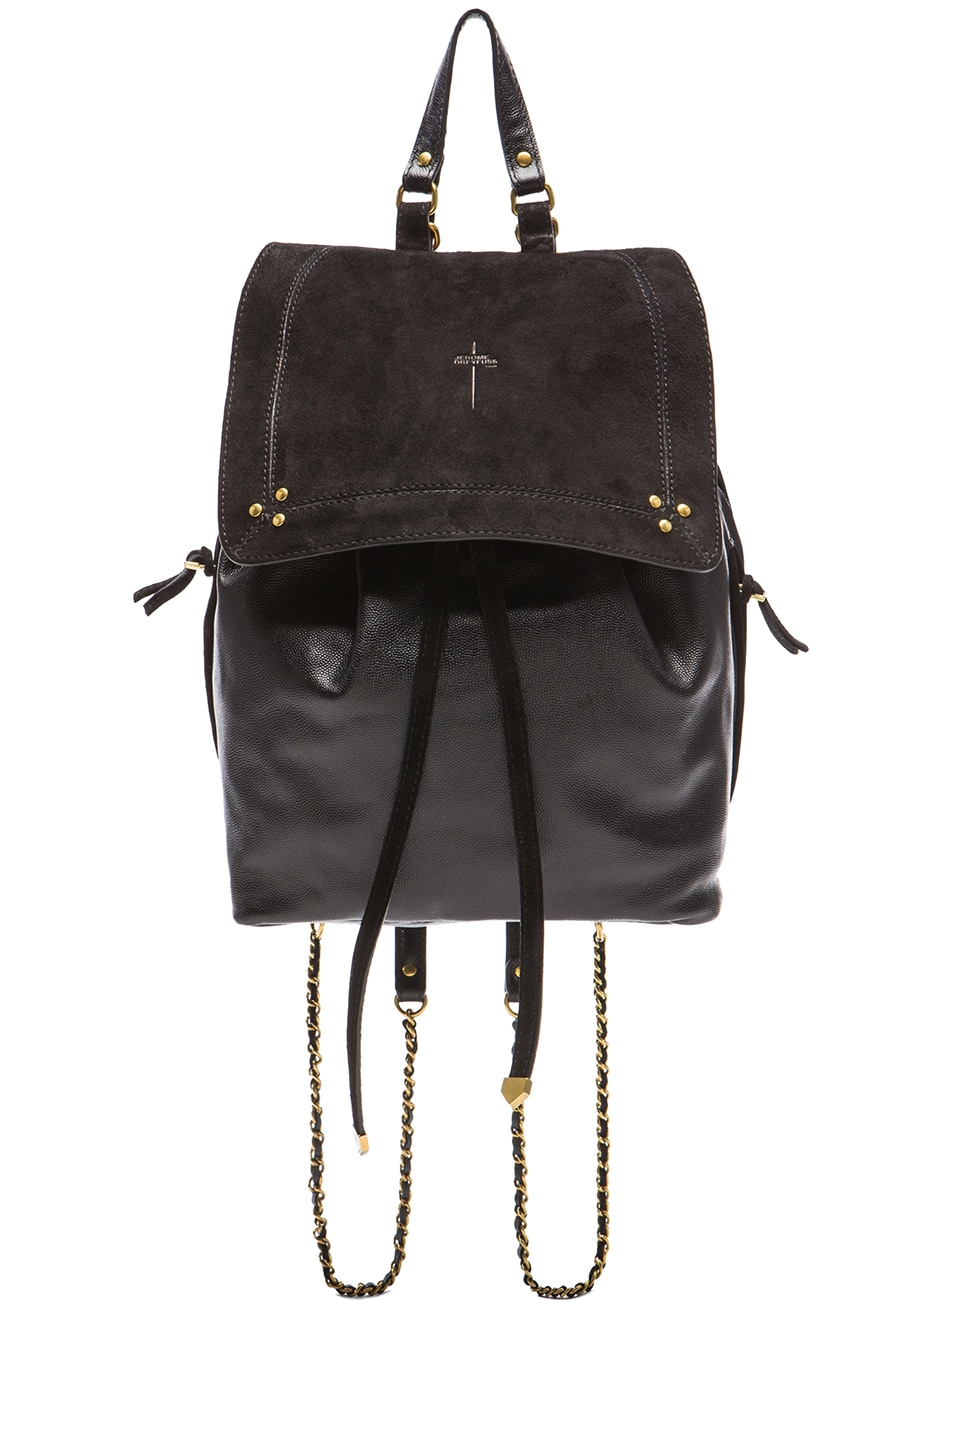 Image 1 of Jerome Dreyfuss Florent Leather & Suede Backpack in Noir Caviar